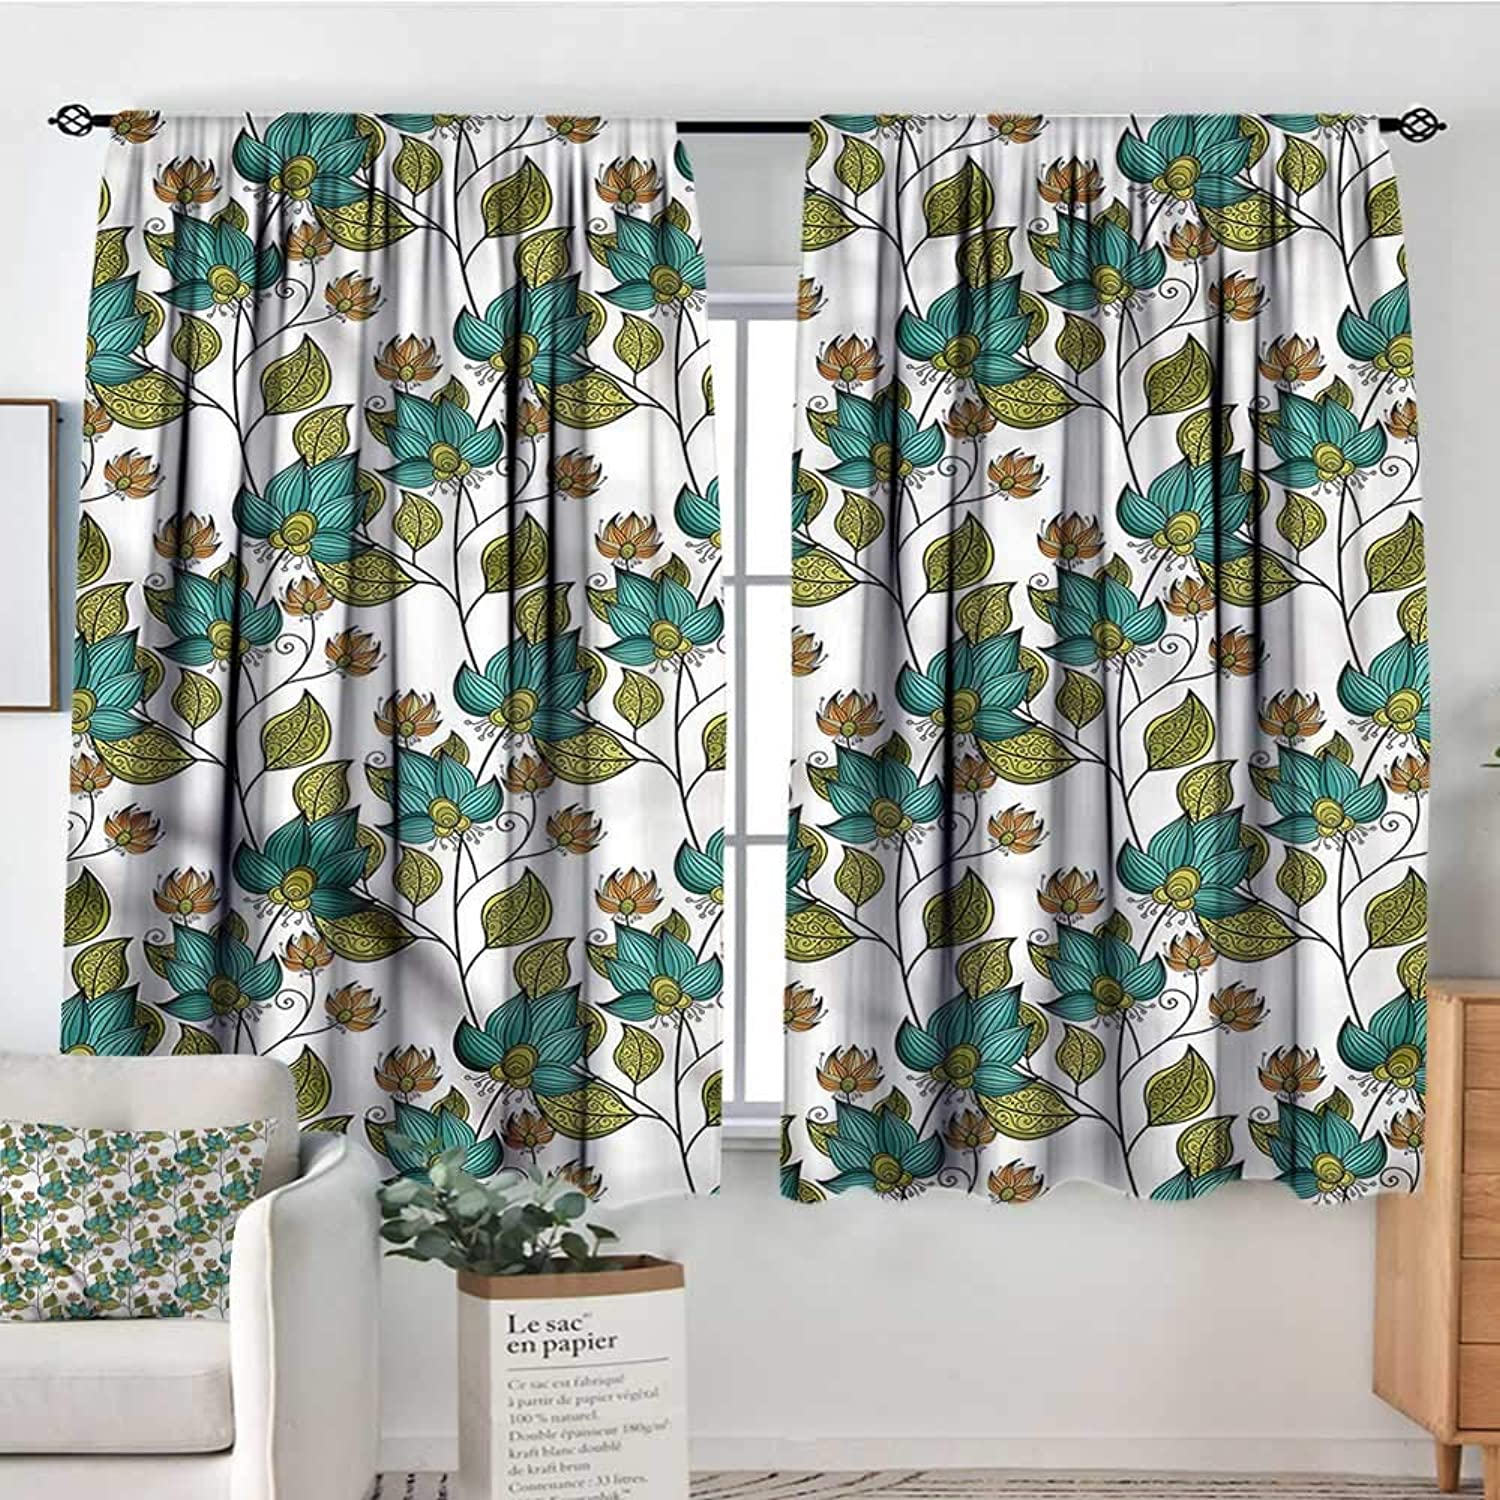 Leaf,Printed Backout Curtains Ornate Oriental Floral 42 X72  Nursery and Kids Bedroom Curtain